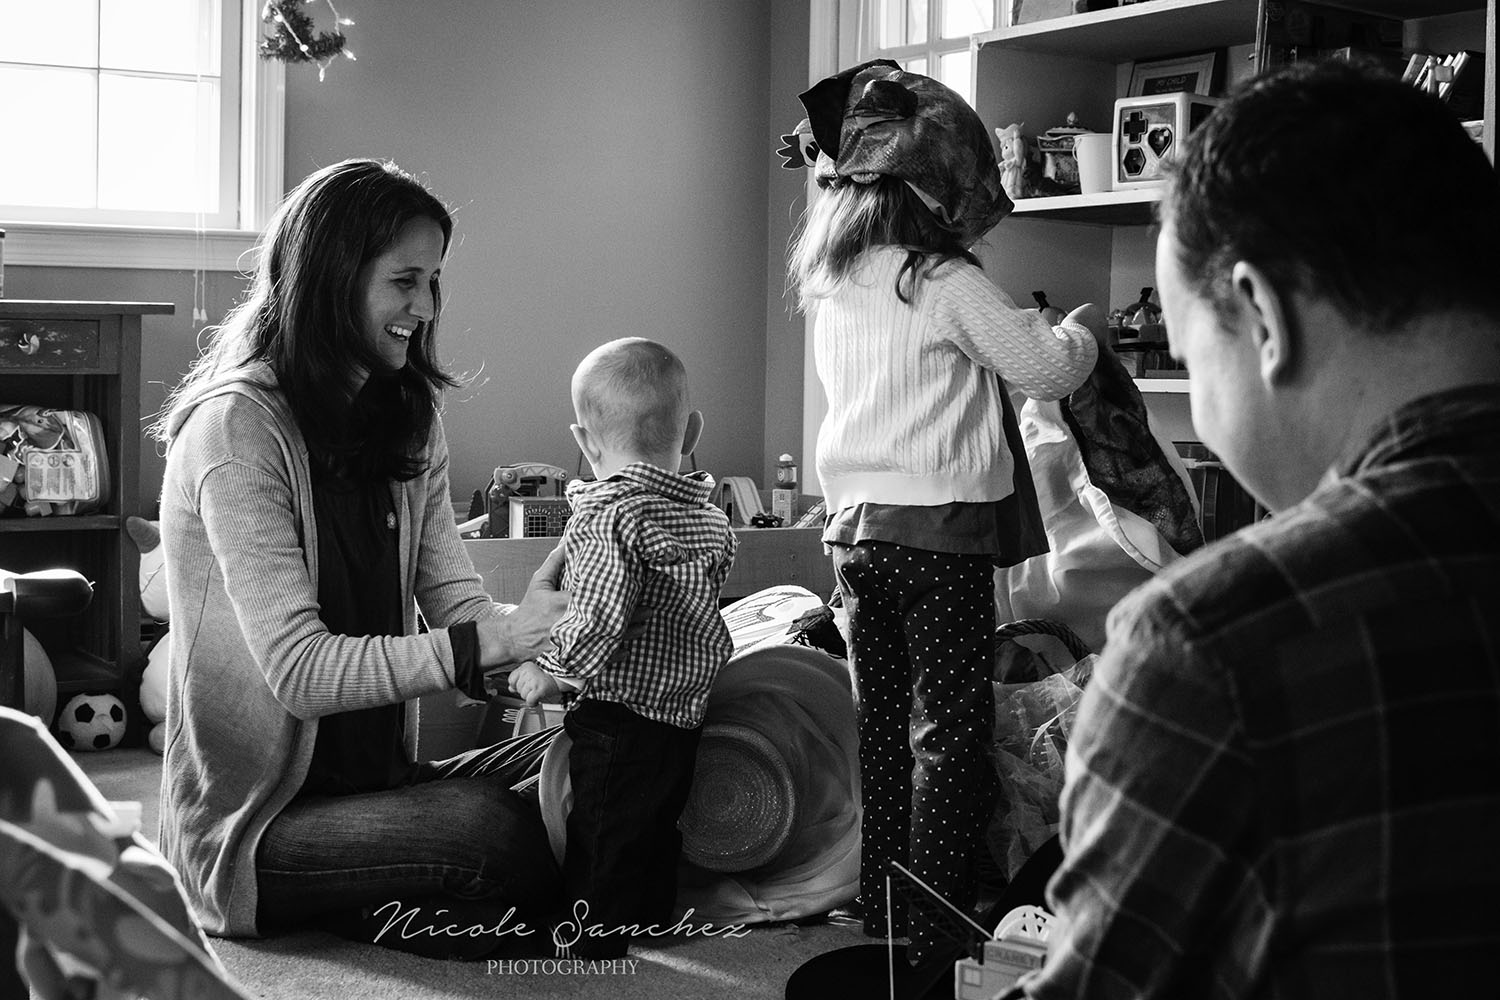 Documenting a quiet family moment